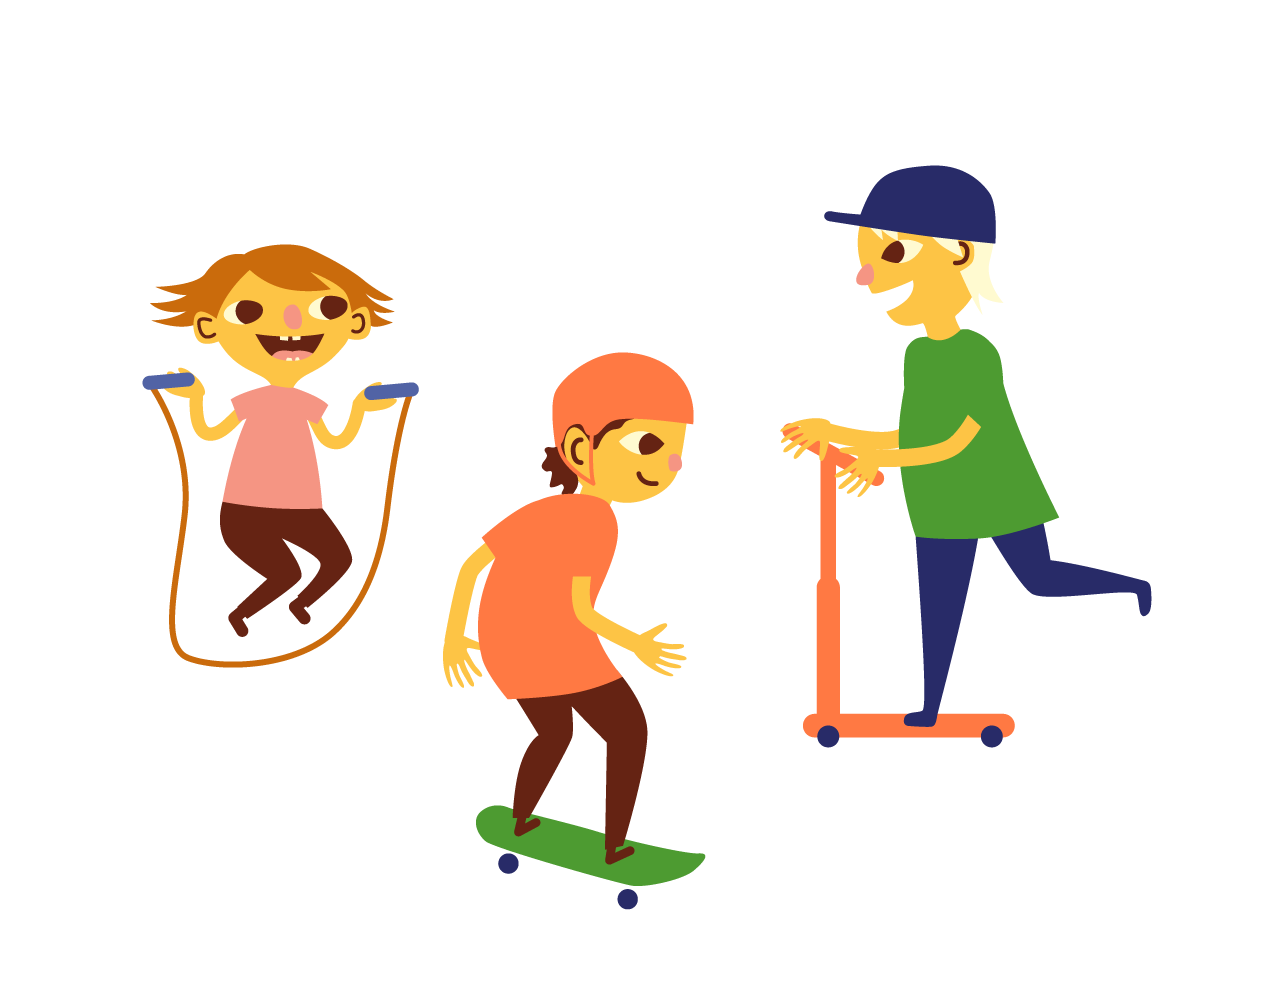 Three friends are kicking scooter, skateboarding and playing with a skipping rope.